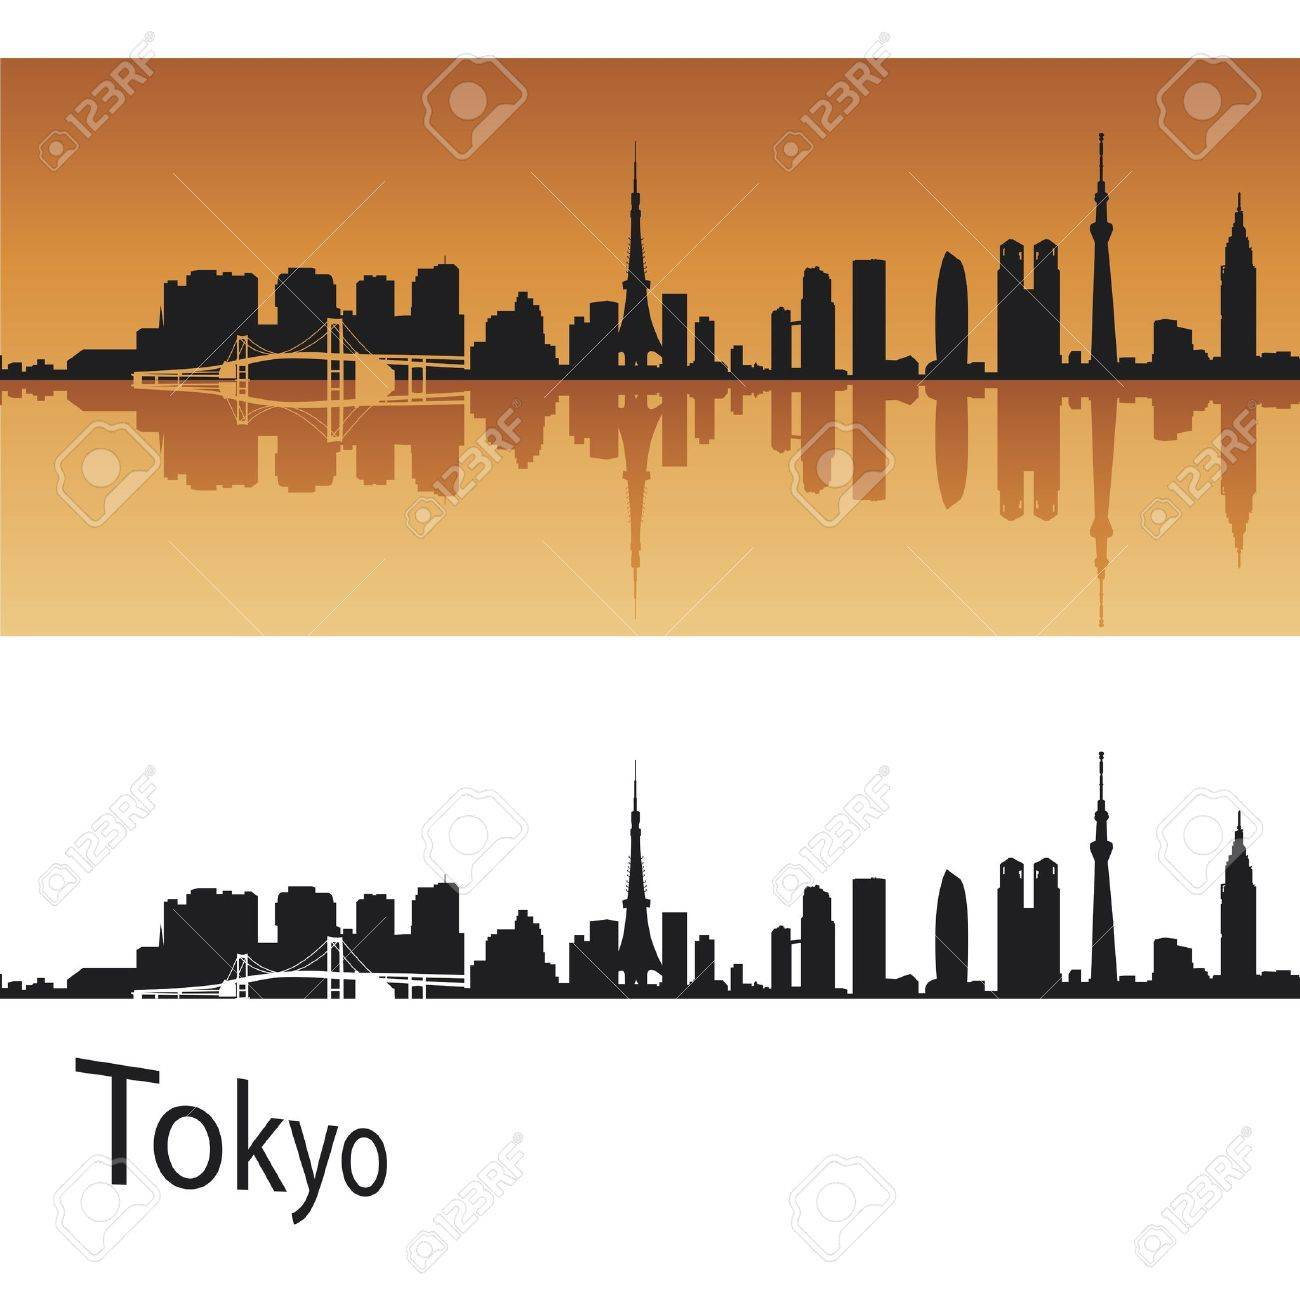 Tokyo skyline in orange background in editable vector file Stock Vector - 12902440